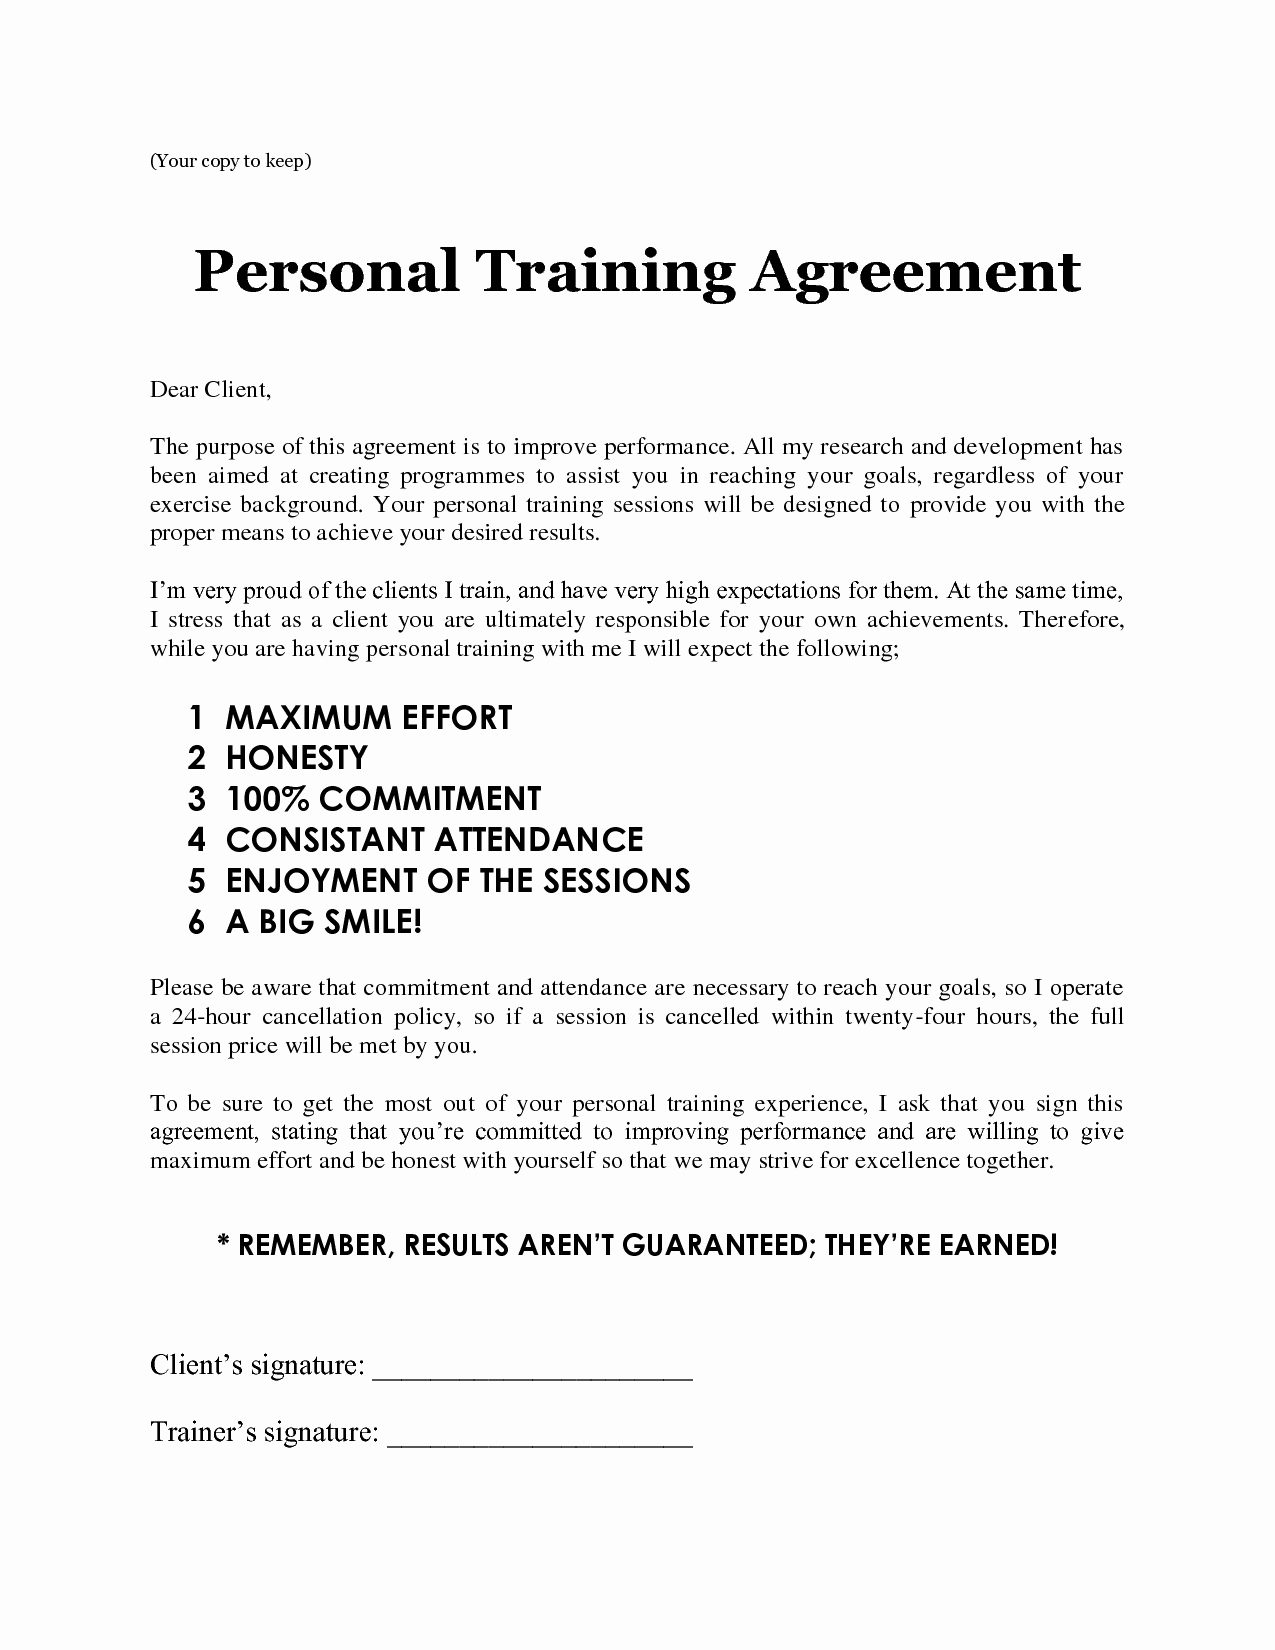 Personal Training Contracts Template Luxury Personal Training Contract Free Printable Documents